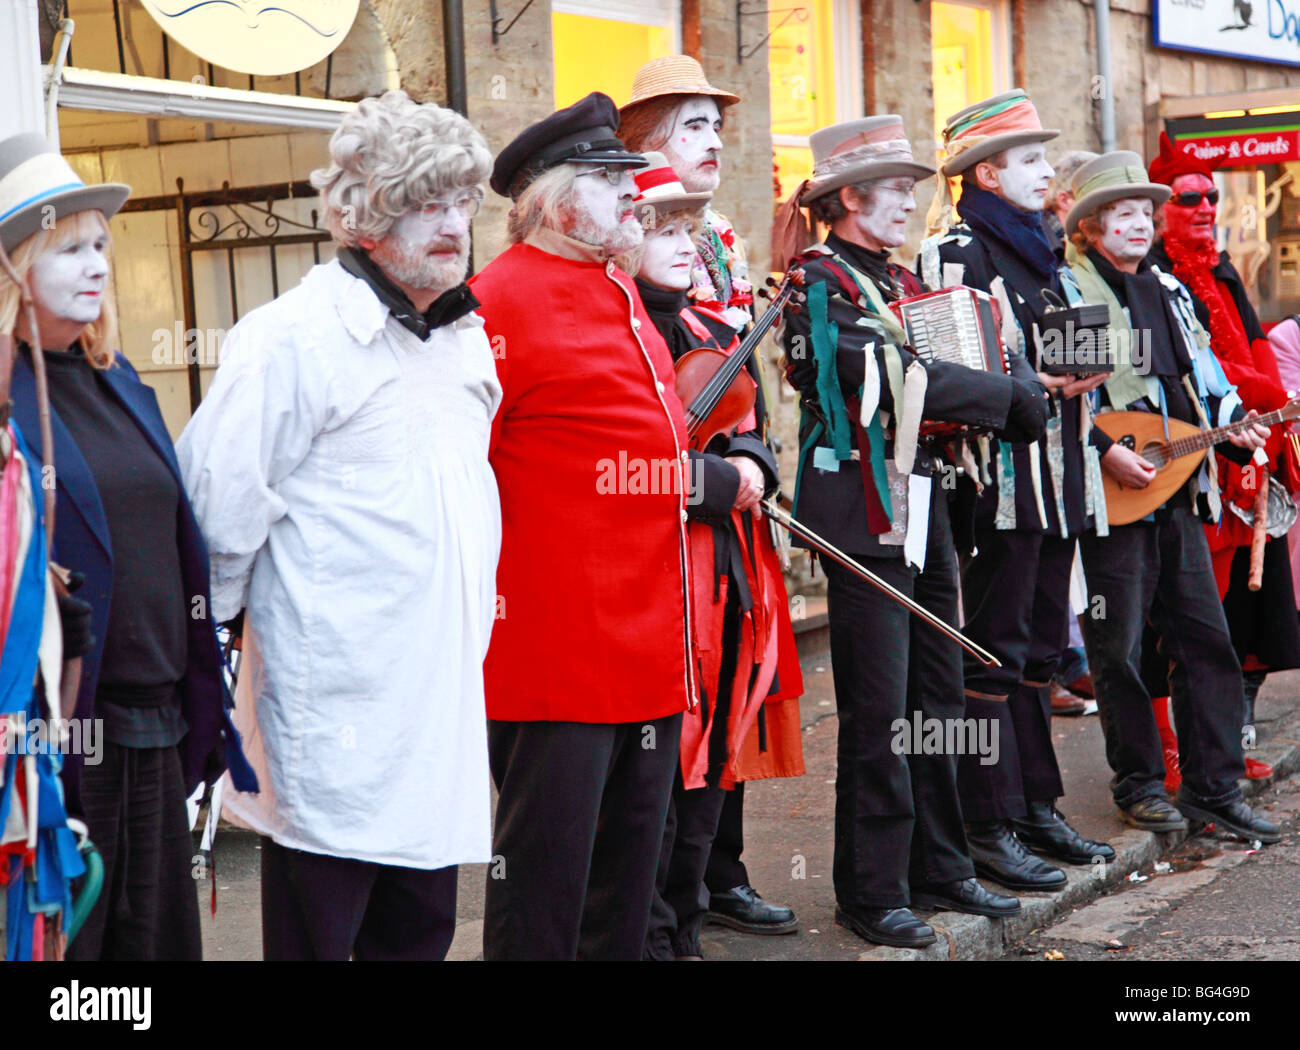 A group of traditional 'mummers' in a street performance during a Christmas fair in the UK - Stock Image